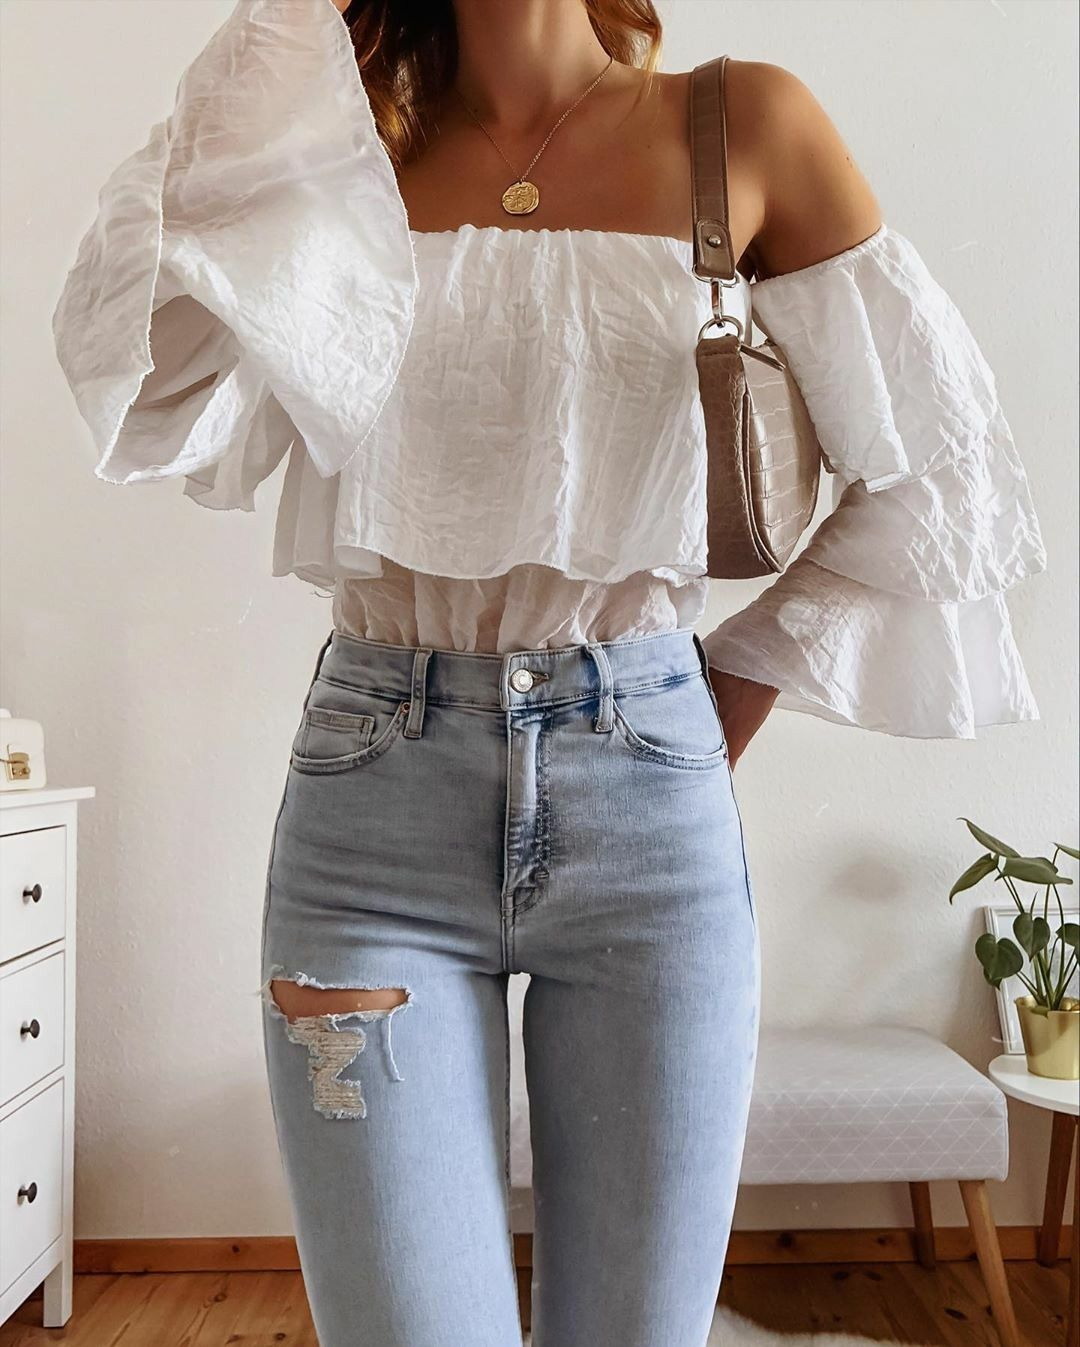 Summer Style And Fashion Inspiration For You In 2020 Cute Casual Outfits Fashion Fashion Outfits